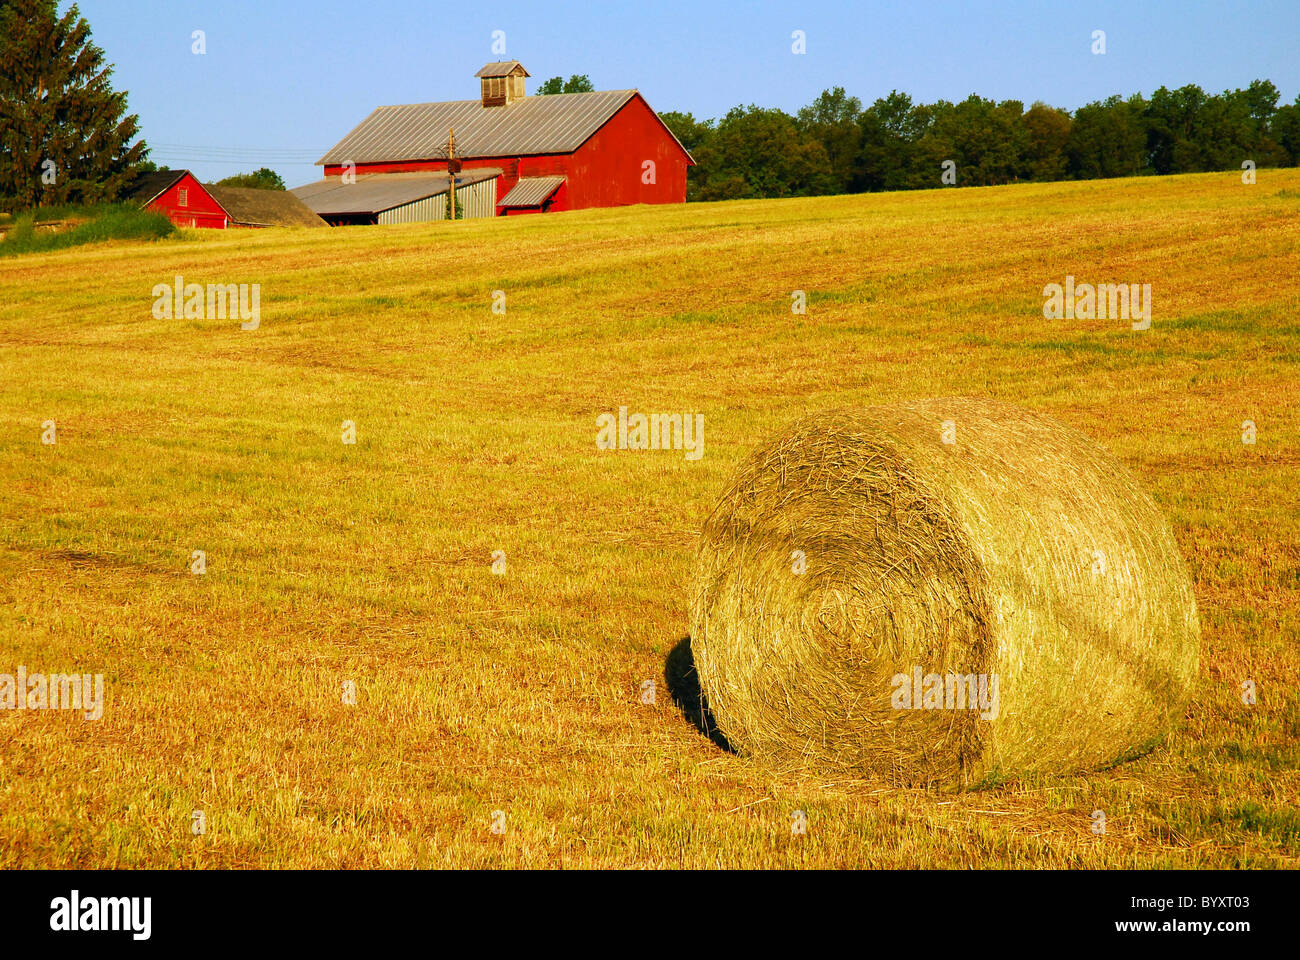 Hay bale on rural property in Catskill region of New York State. - Stock Image